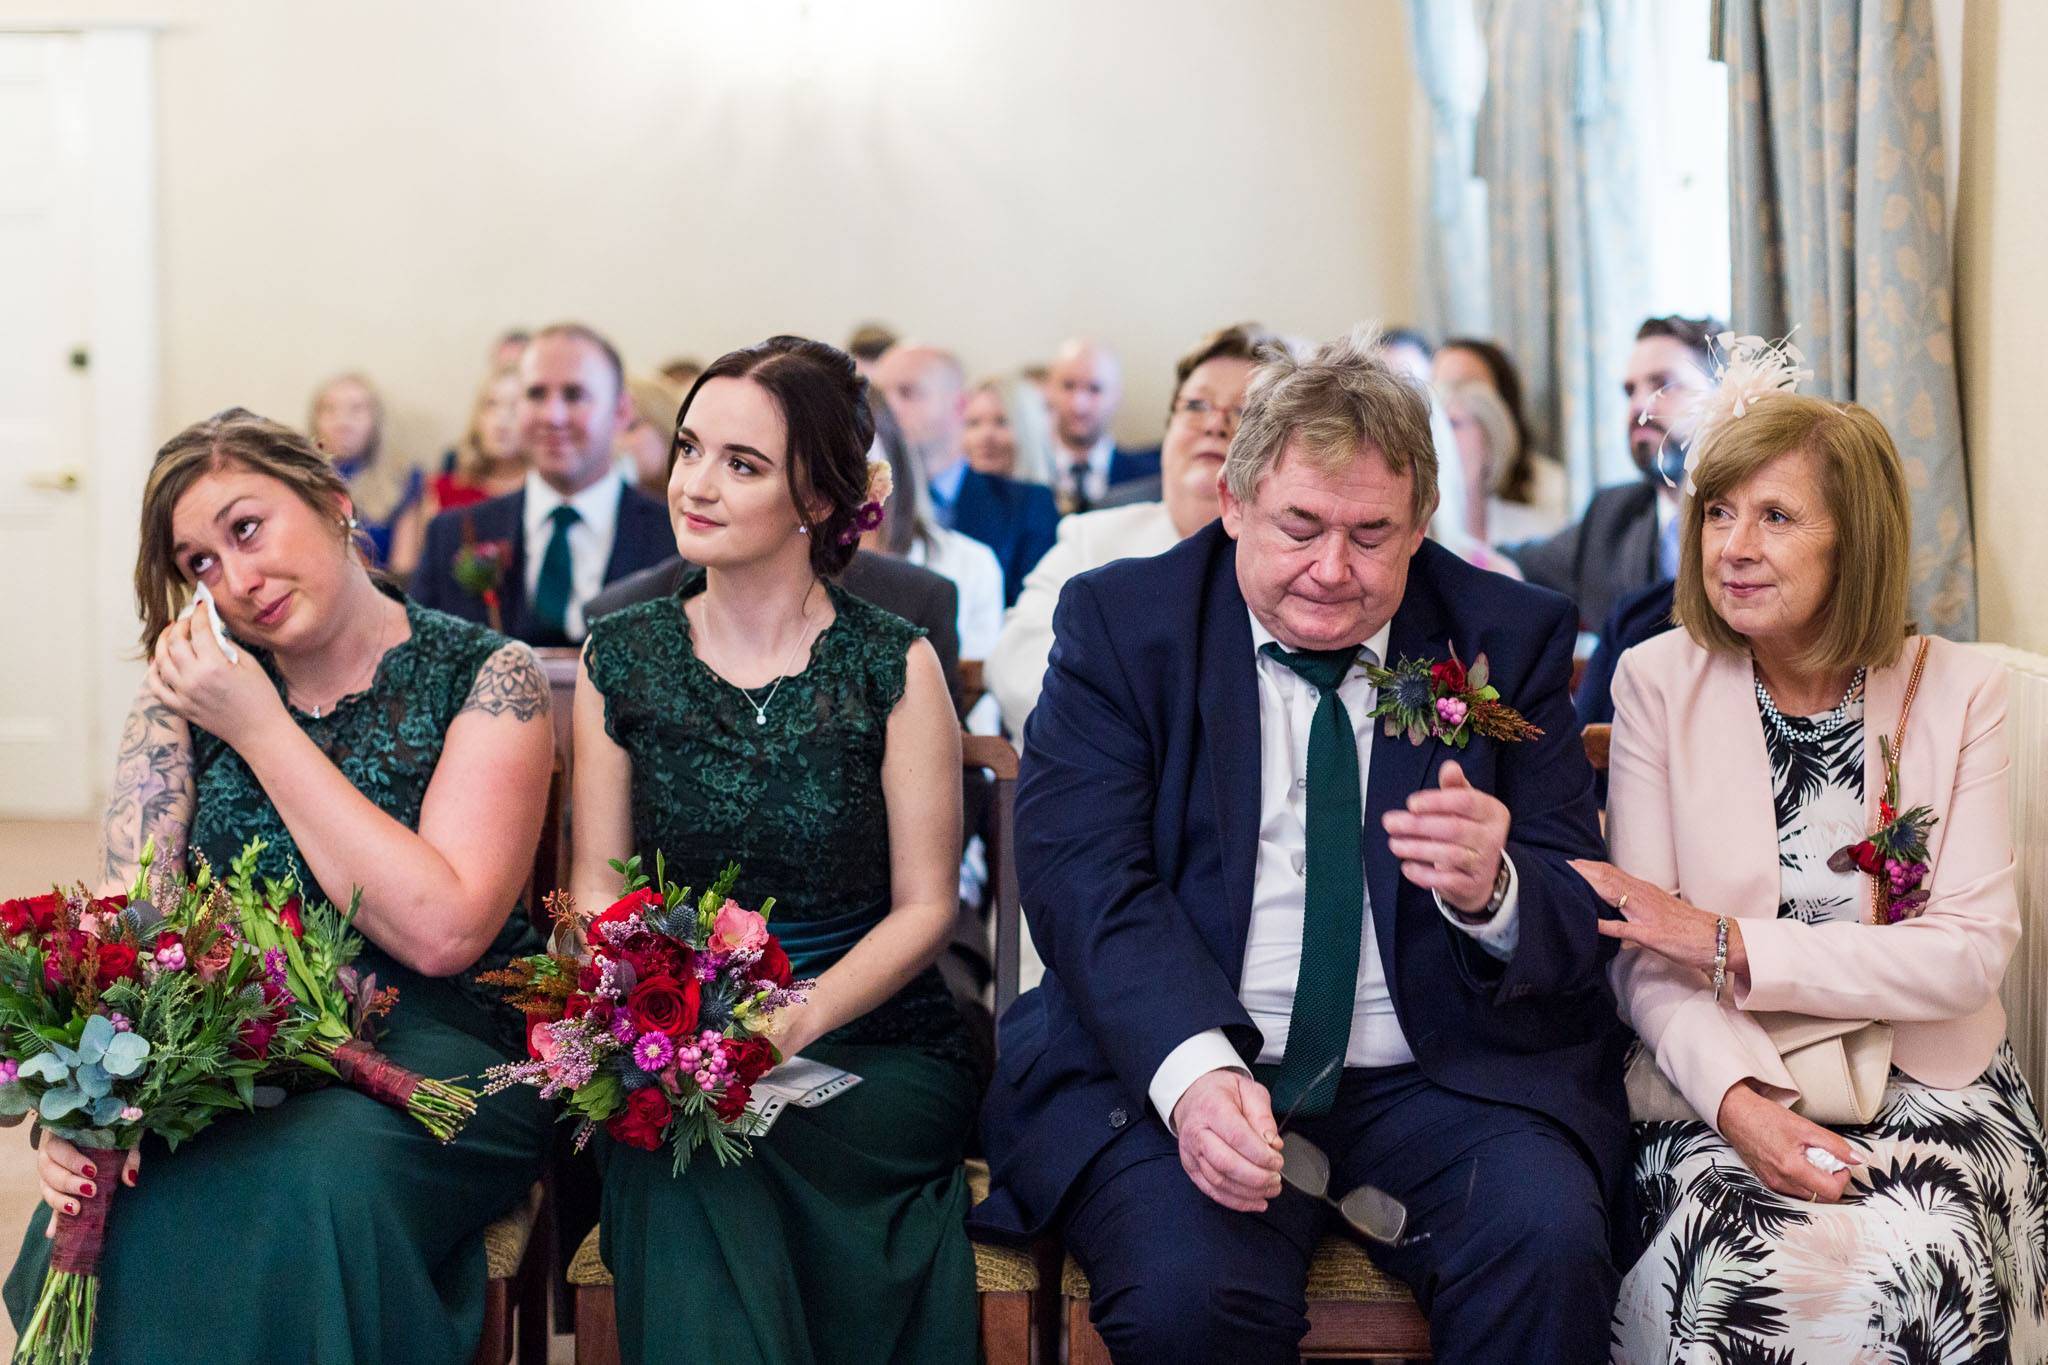 Emotional bridesmaid and father of the groom during wedding ceremony at The Tetley